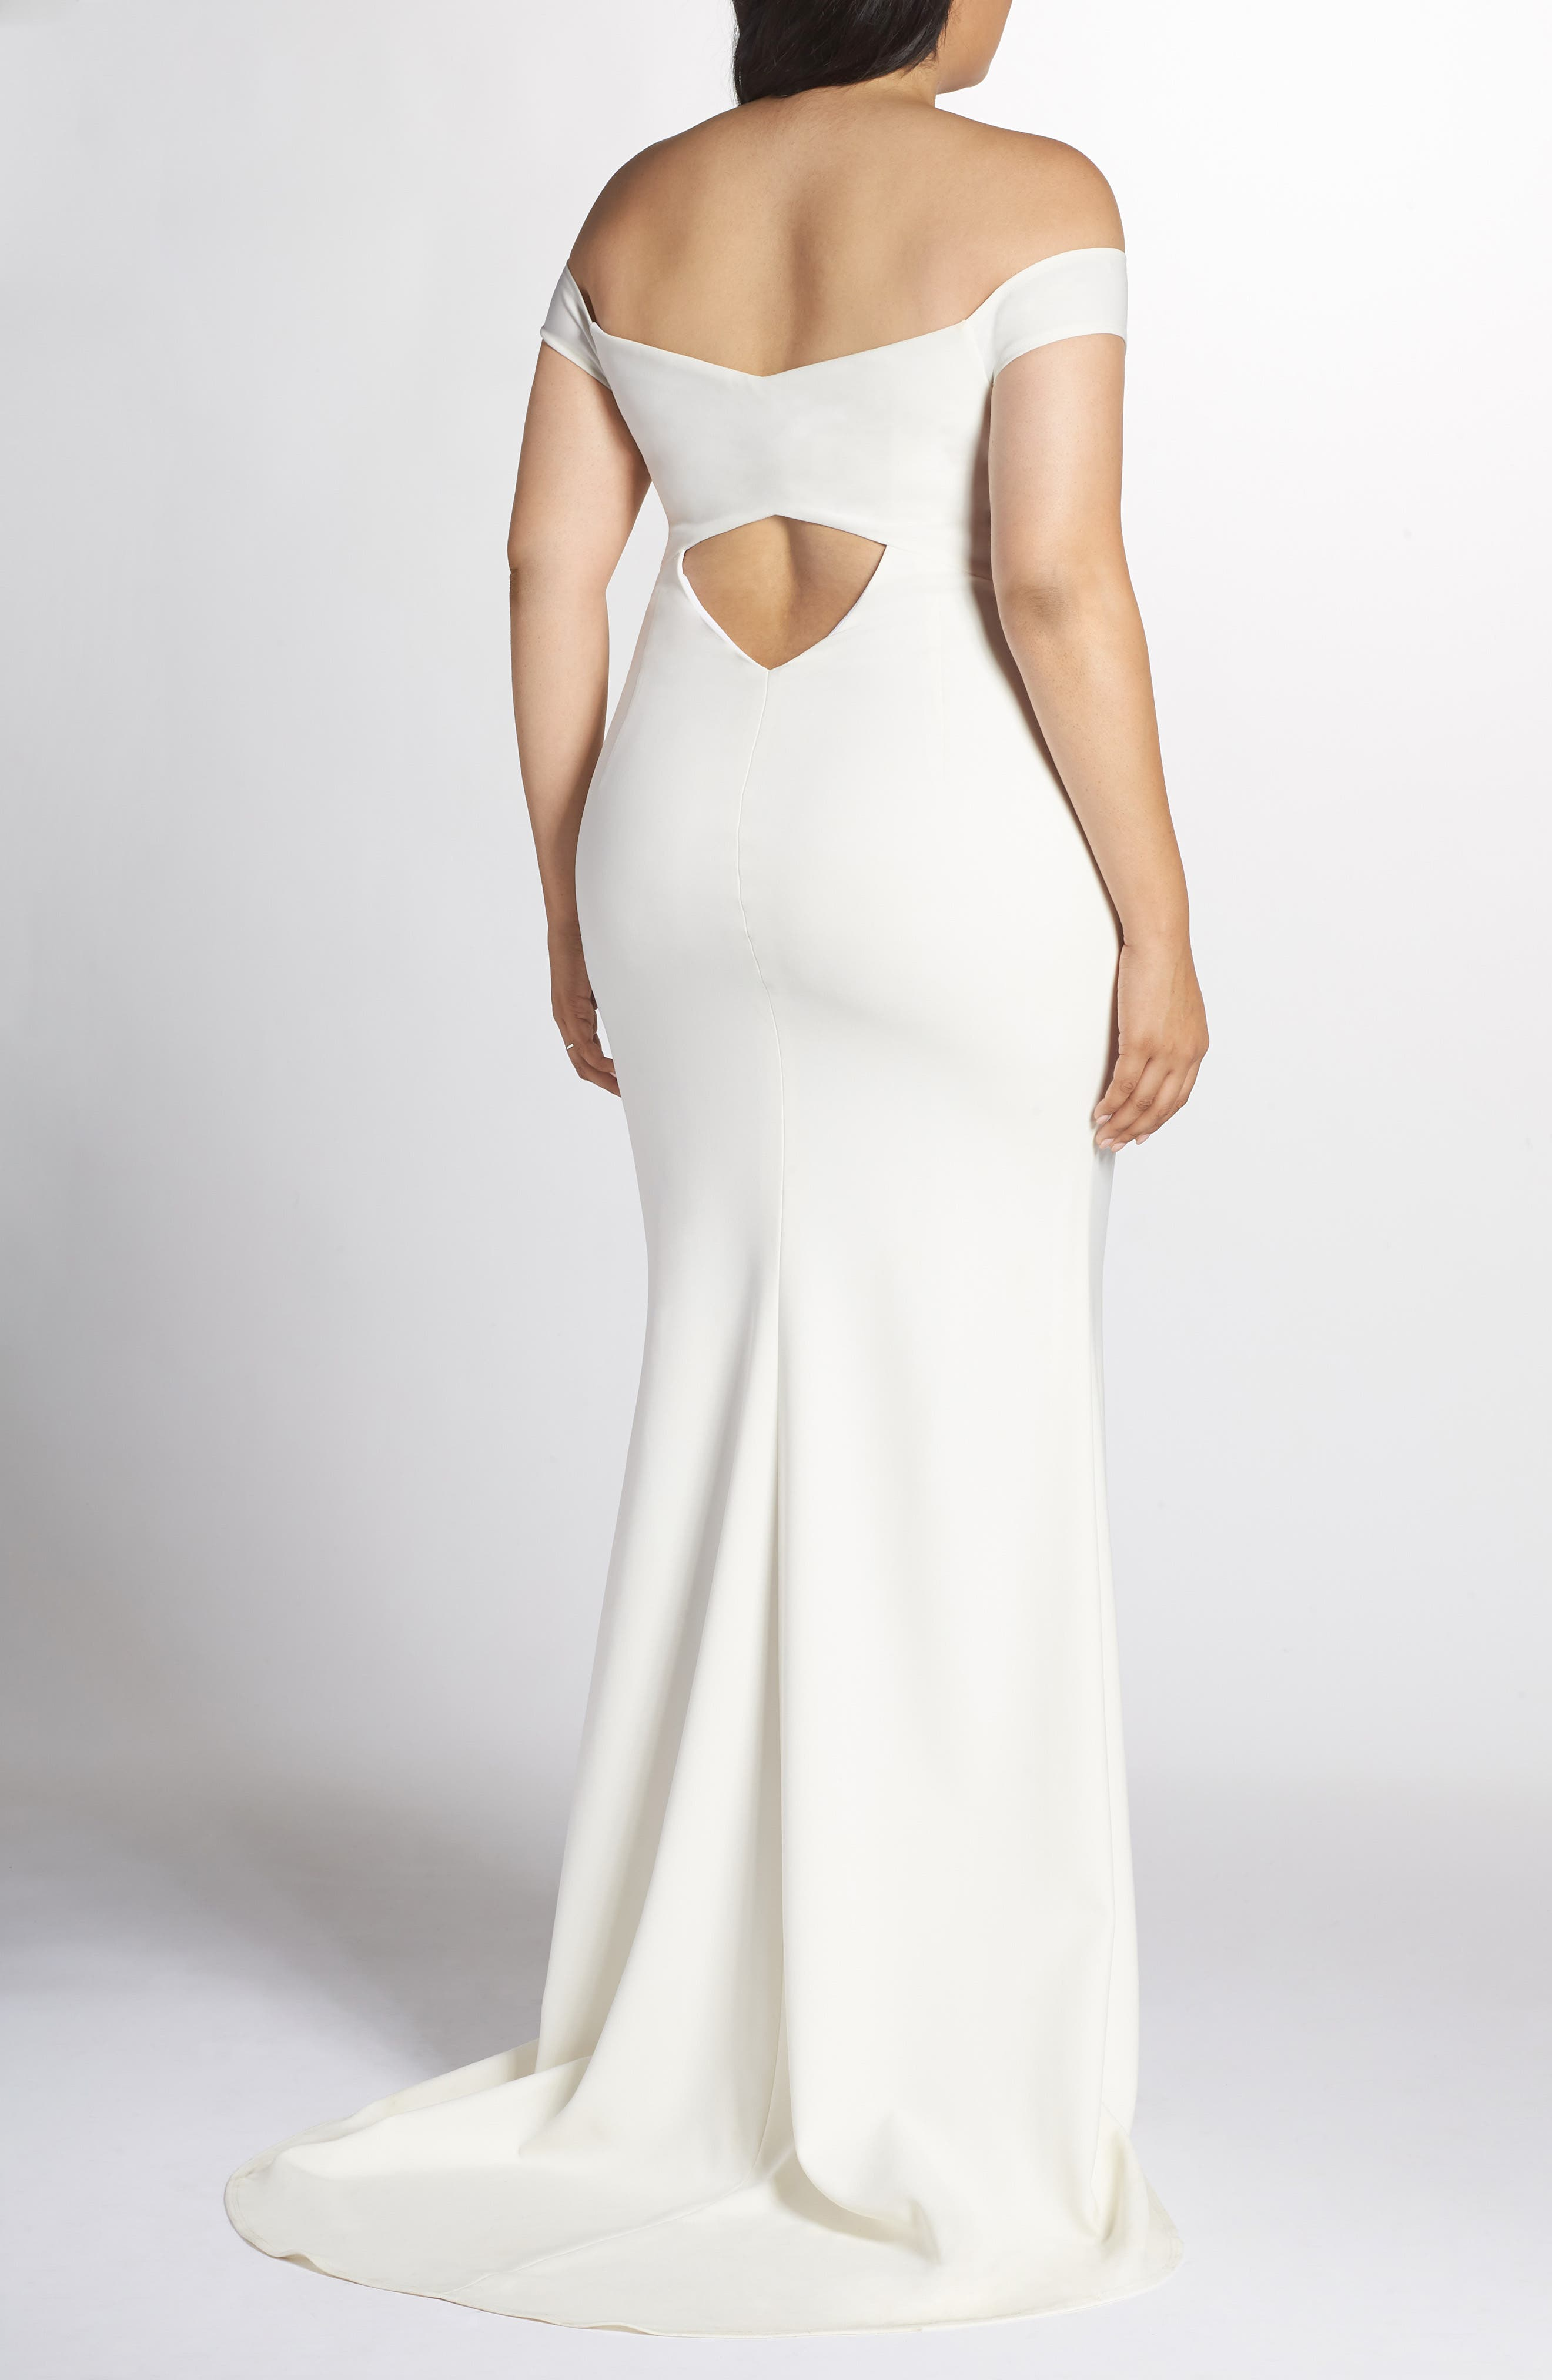 NOEL AND JEAN BY KATIE MAY,                             Alpha Off the Shoulder Dress,                             Alternate thumbnail 2, color,                             IVORY